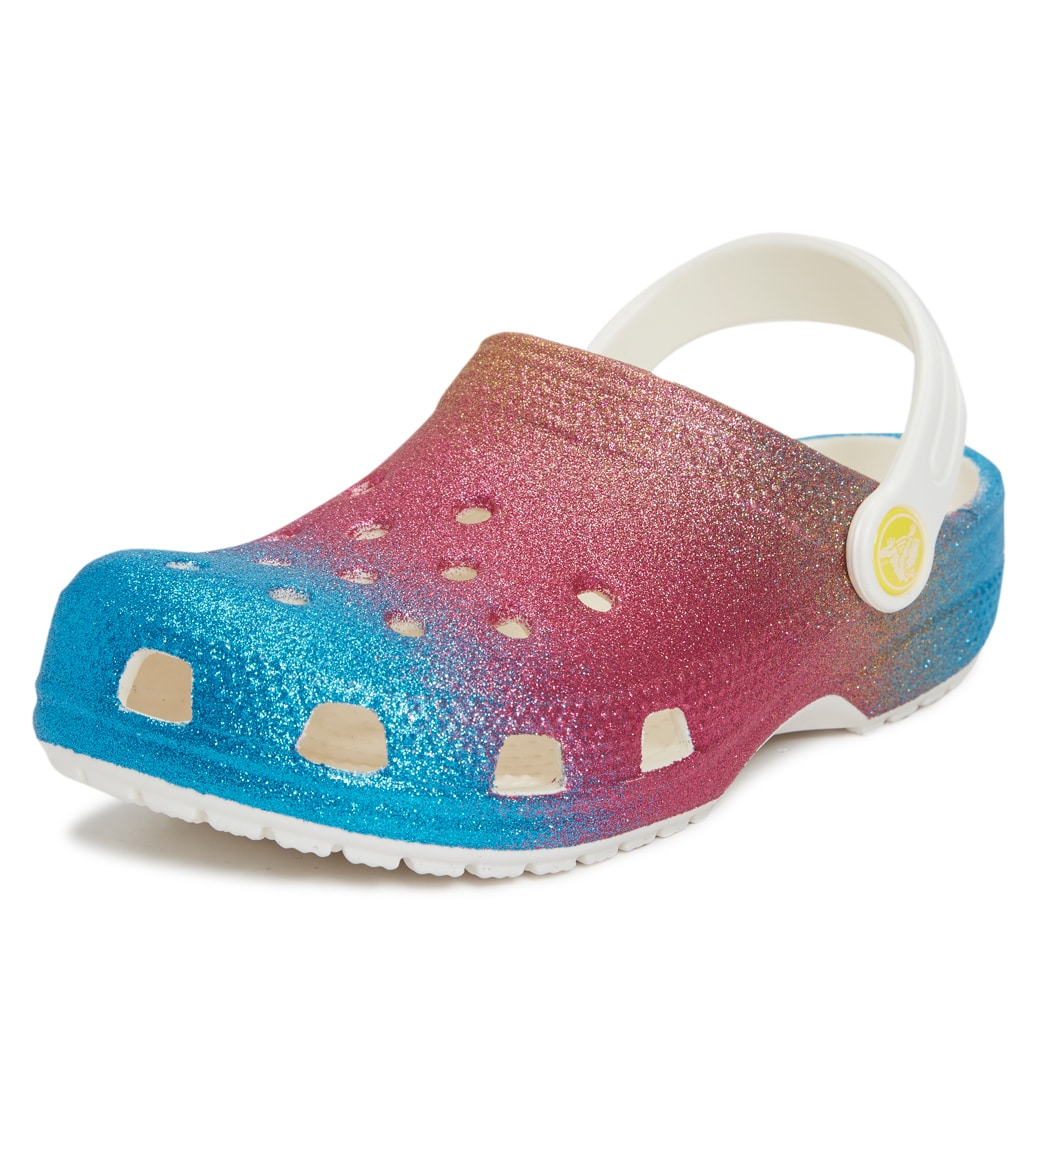 crocs shoes for toddlers